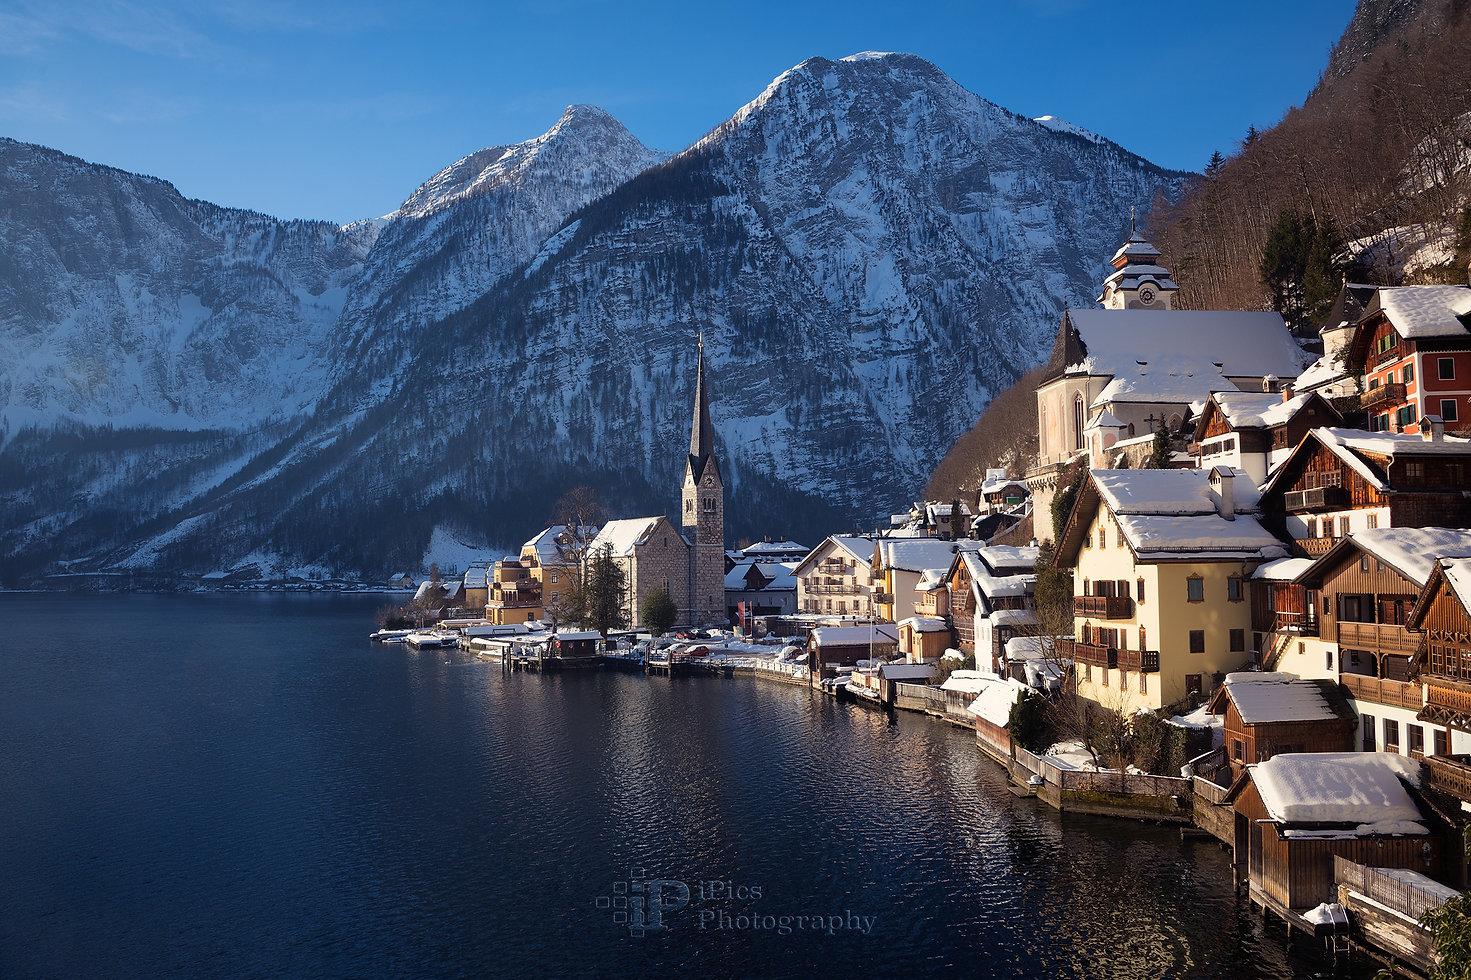 Landscape photograph of the church and houses in the village of Hallstatt with snow on the roofs at the shore of Hallstaetter See lake and surrounded by Alps mountains at sunrise on a beautiful blue sky winter day in Gmunden, Upper Austria.